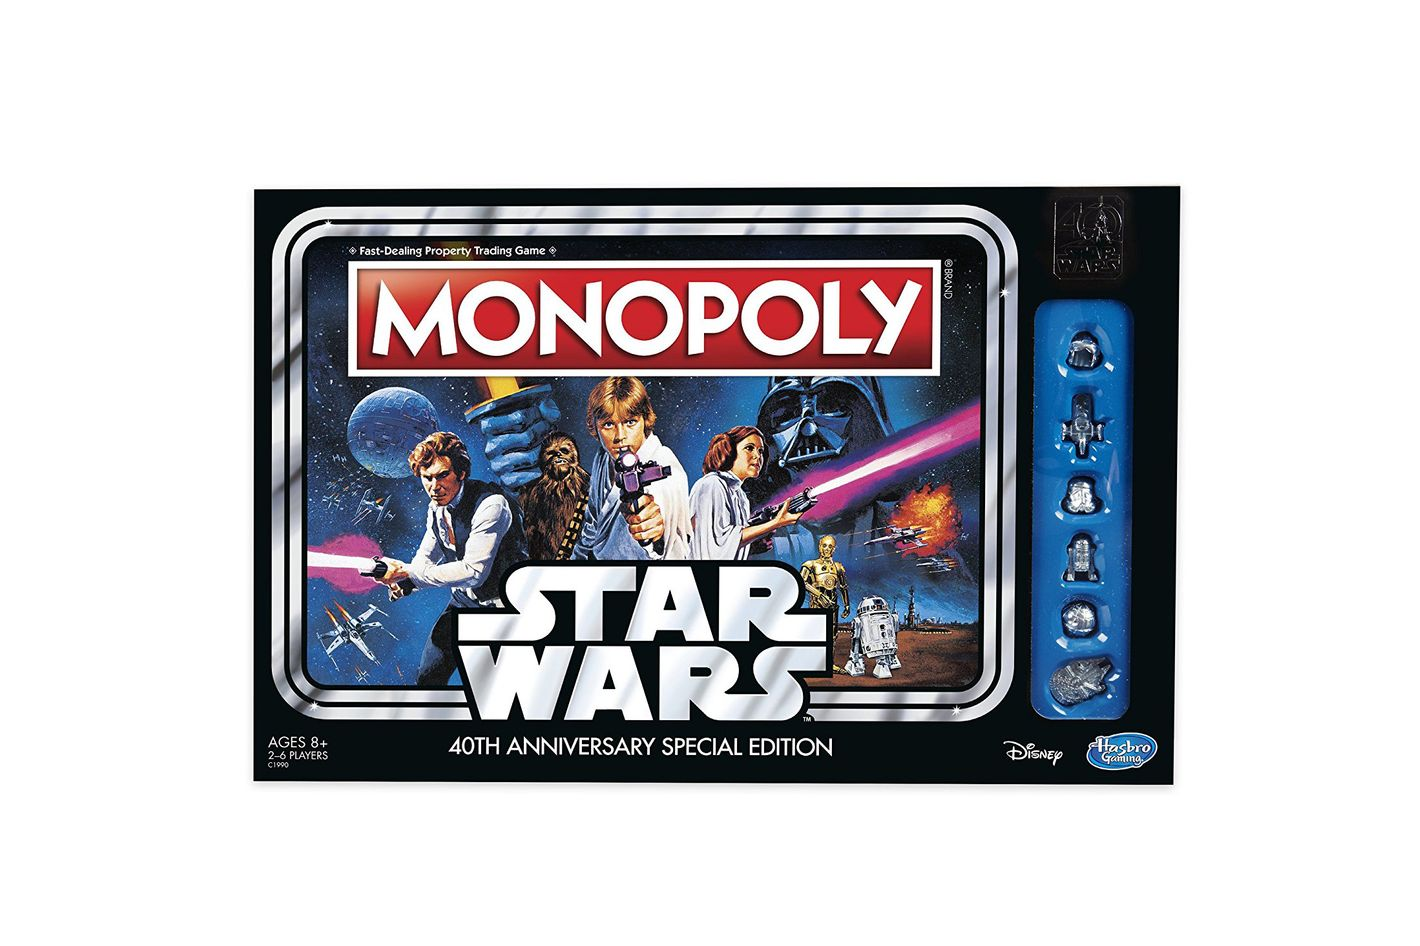 Monopoly Star Wars 40th Anniversary Special Edition